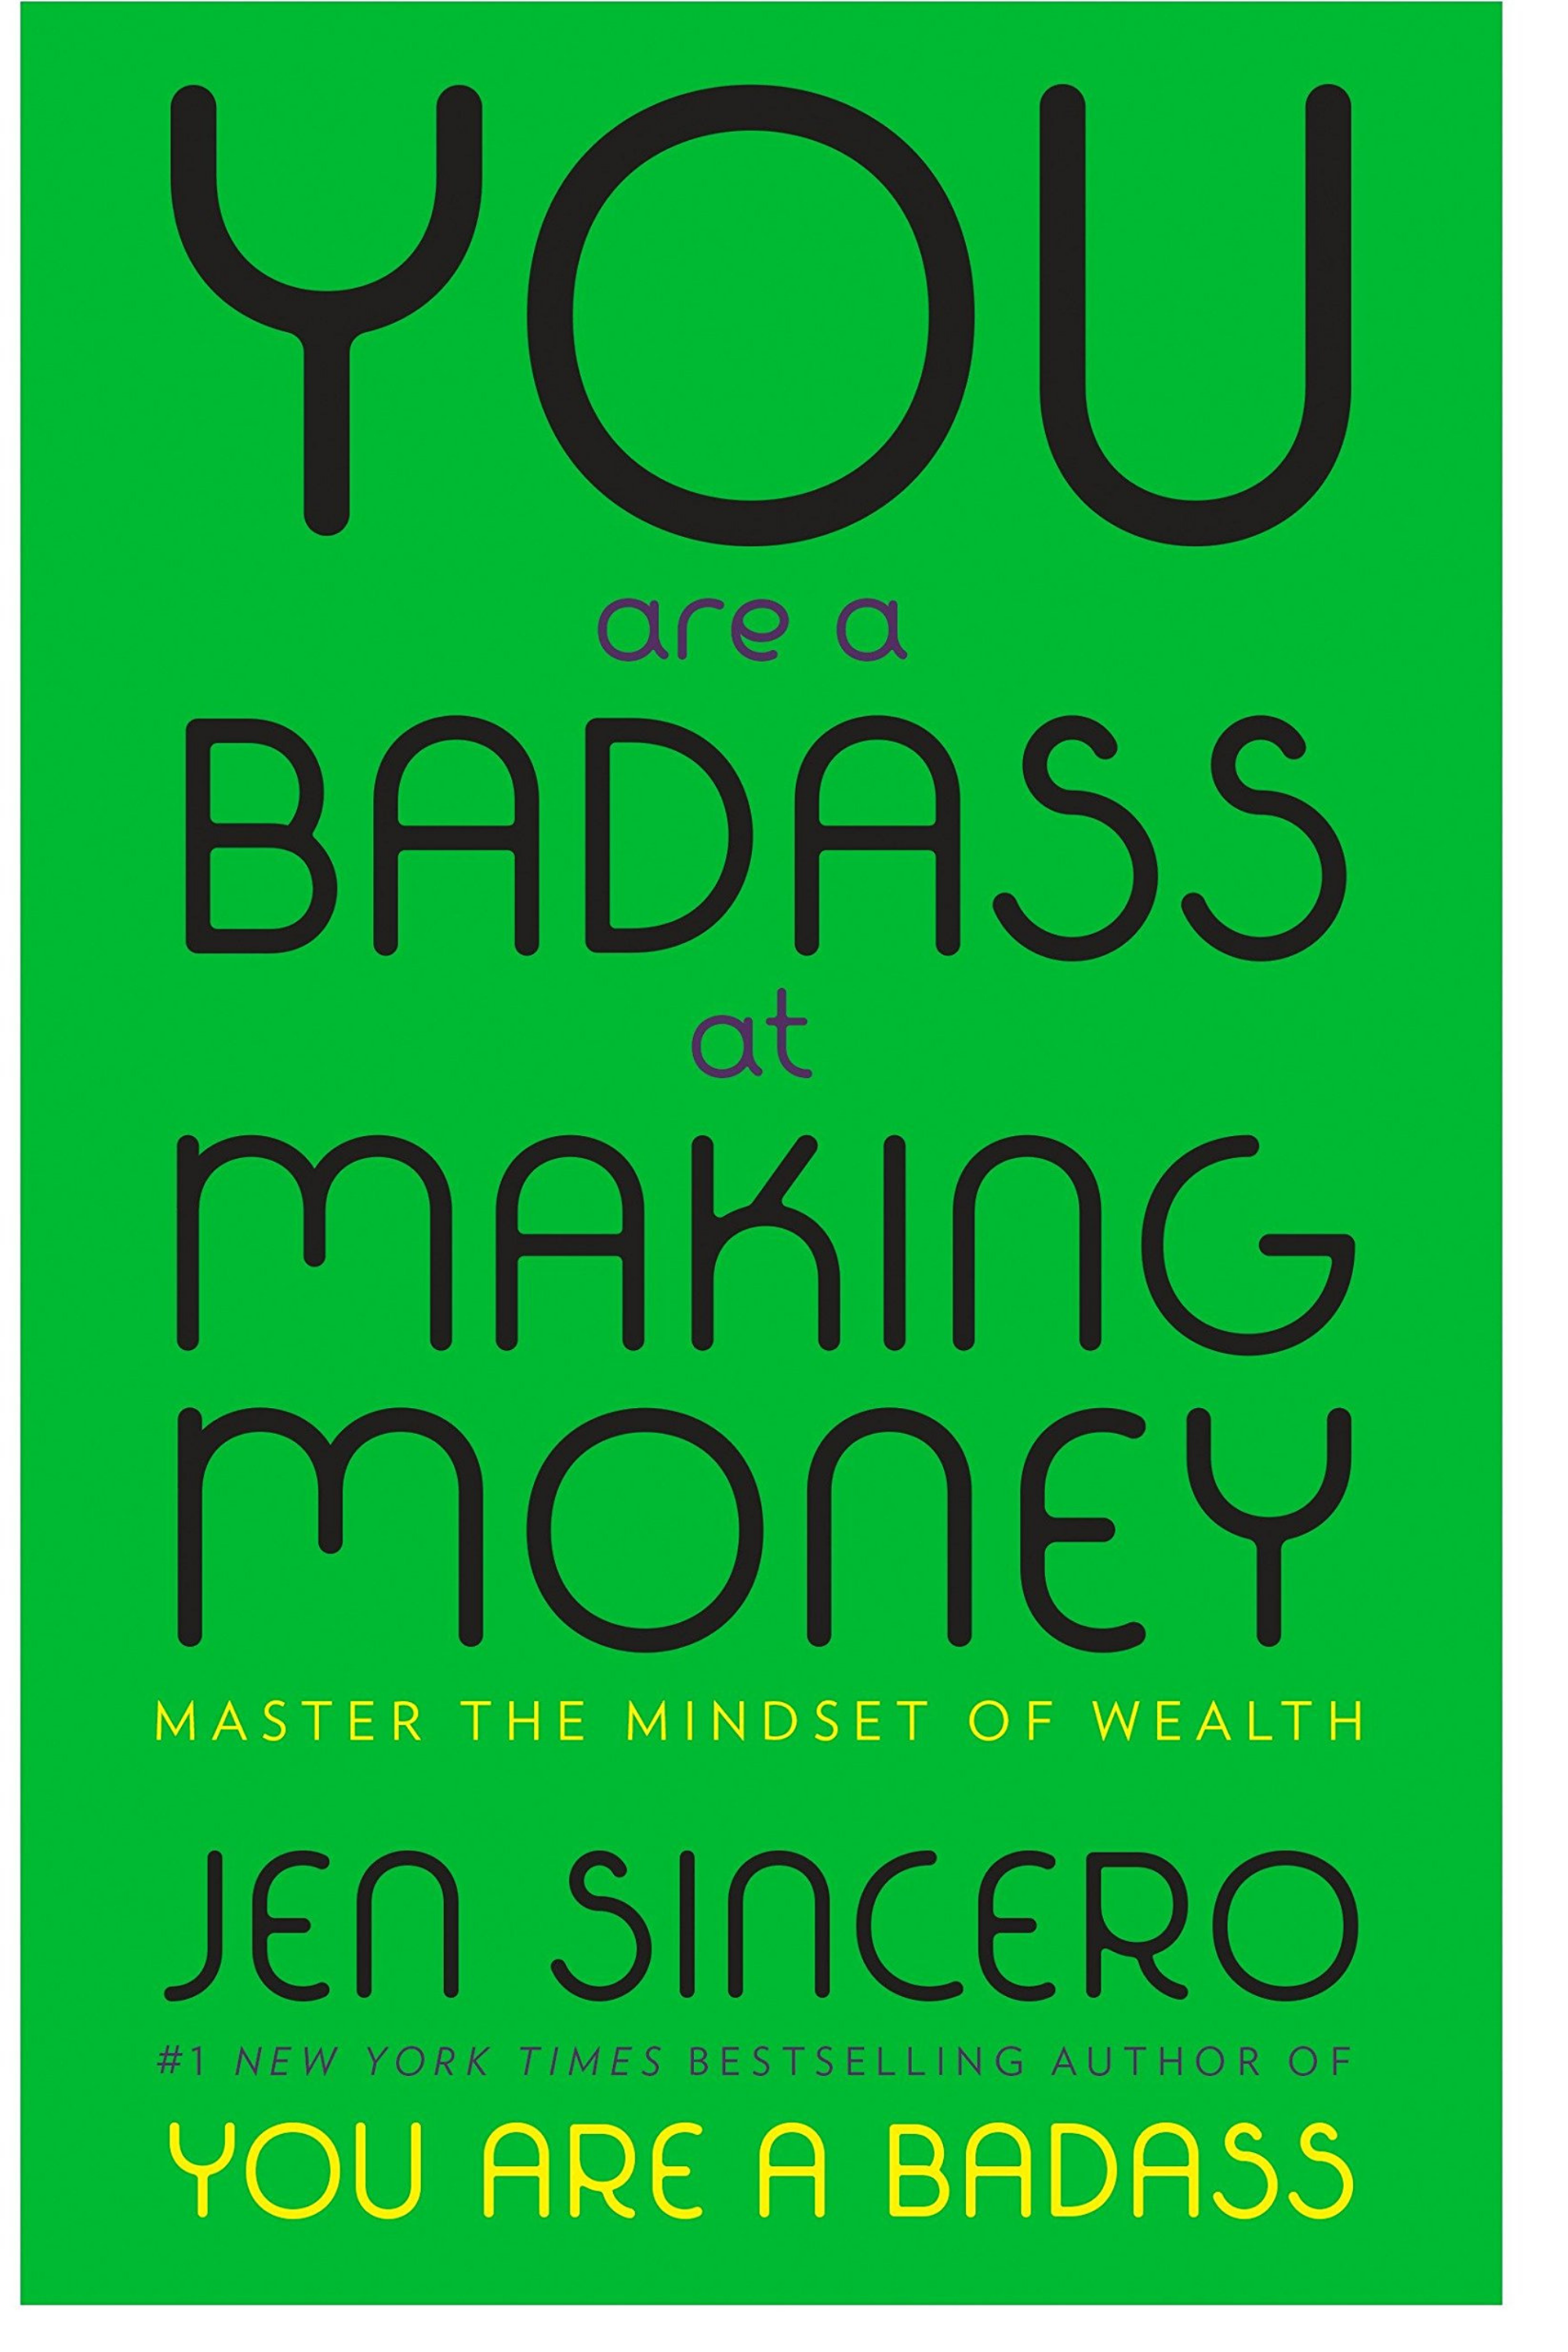 You are a Badass at Making Money Jen Sincero Courtney Elmer.png